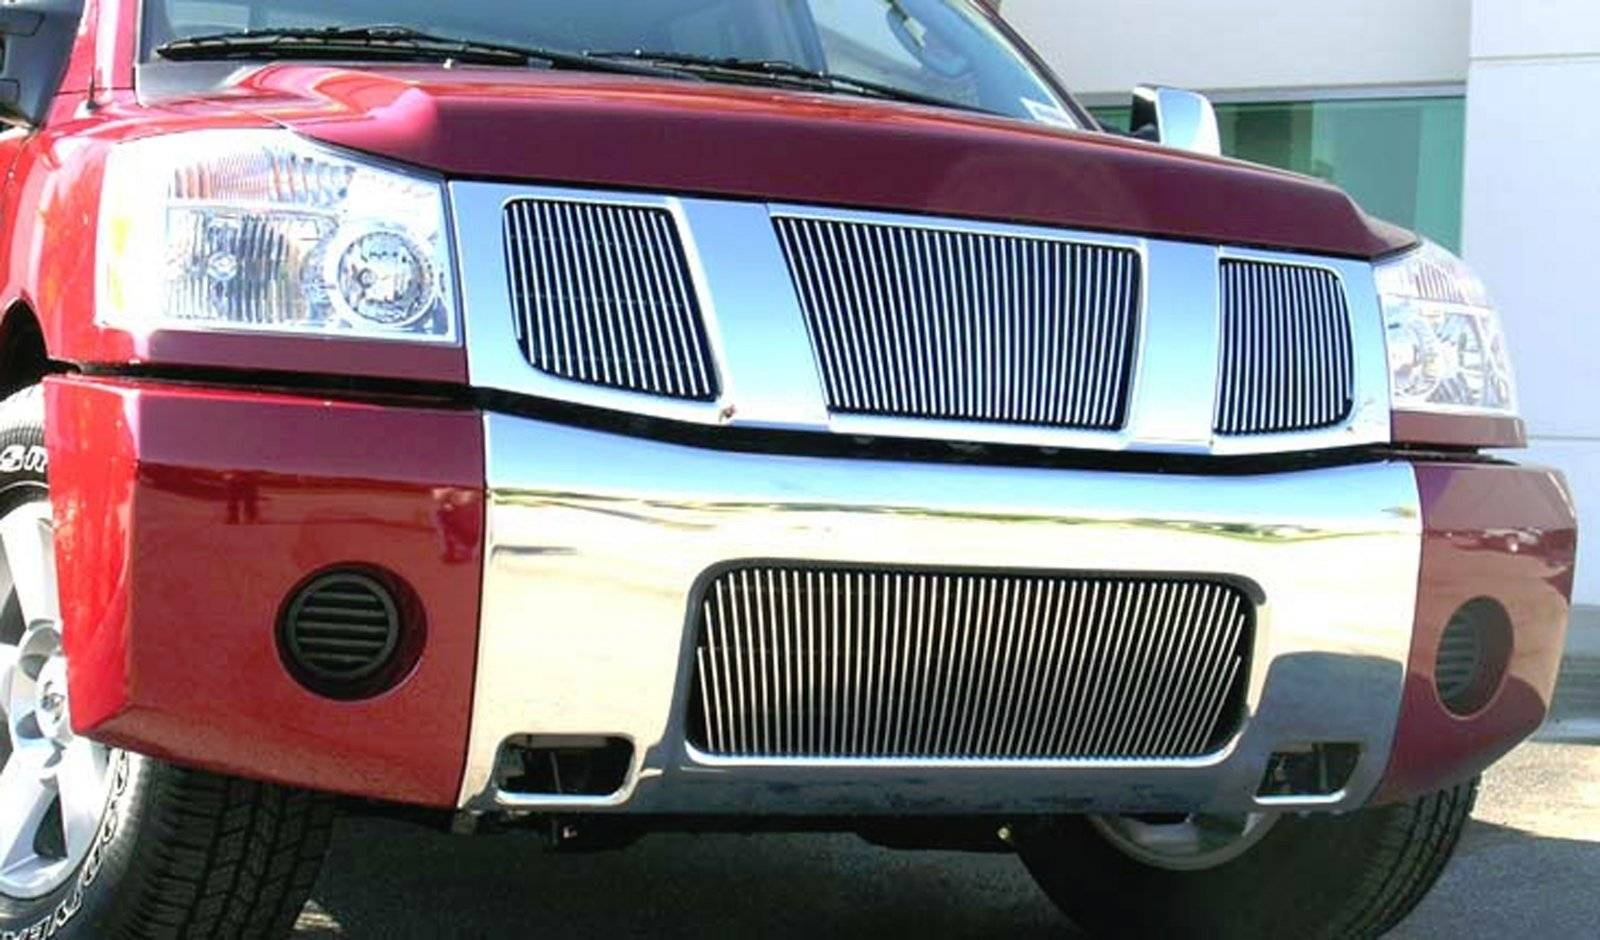 T-REX Nissan Titan 04-07 Armada VERTICAL Billet Grille Overlay/Bolt On - VERTICAL - 3 Pc 32,16,16 Bars - Pt # 31780